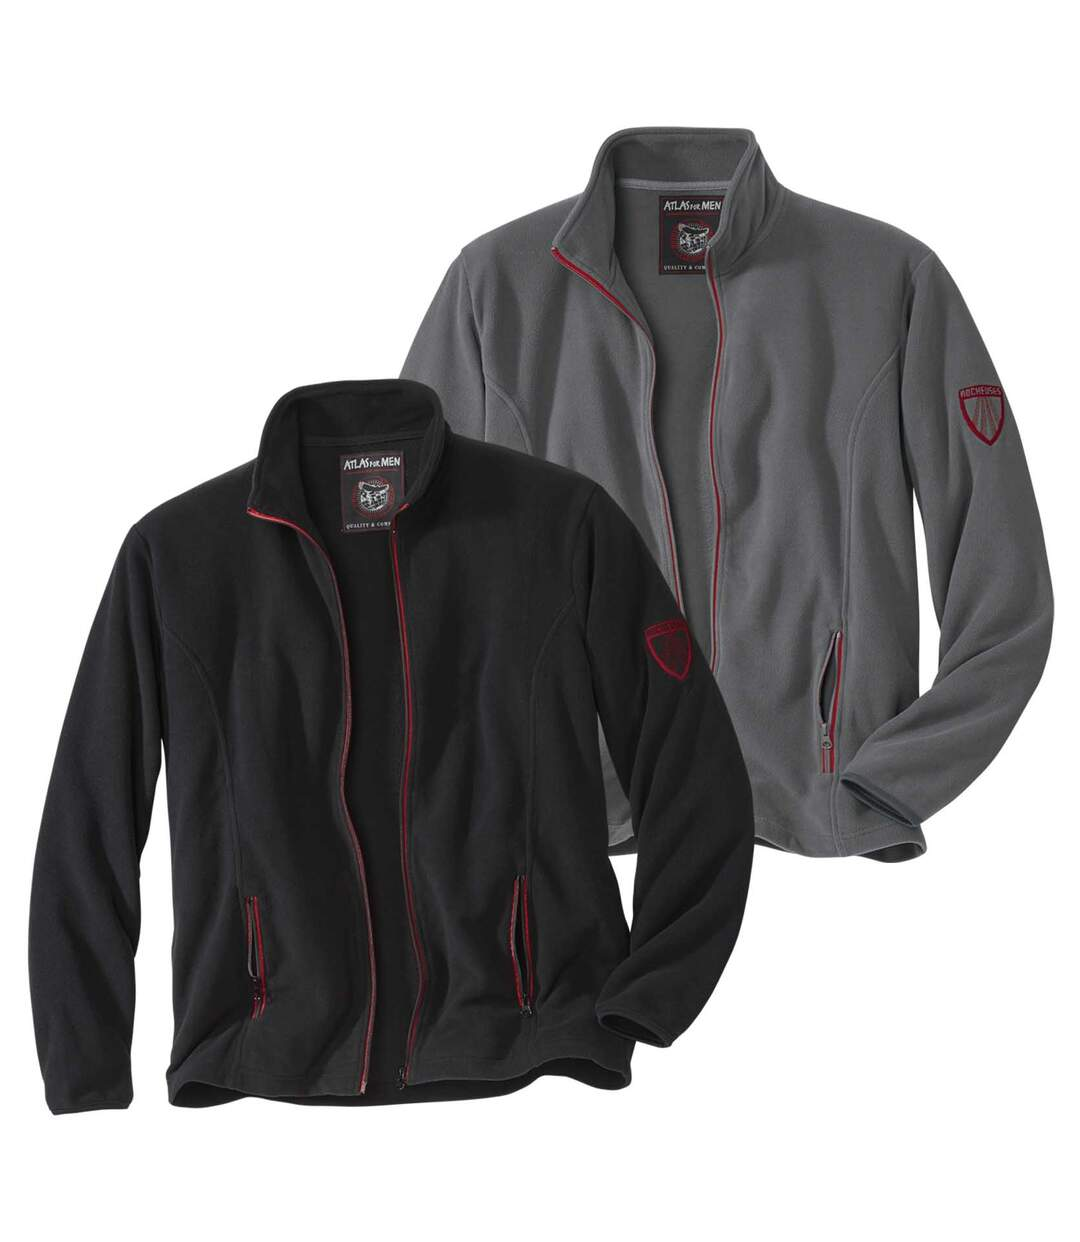 Pack of 2 Men's Rocky Mountain Microfleece Jackets - Grey Black